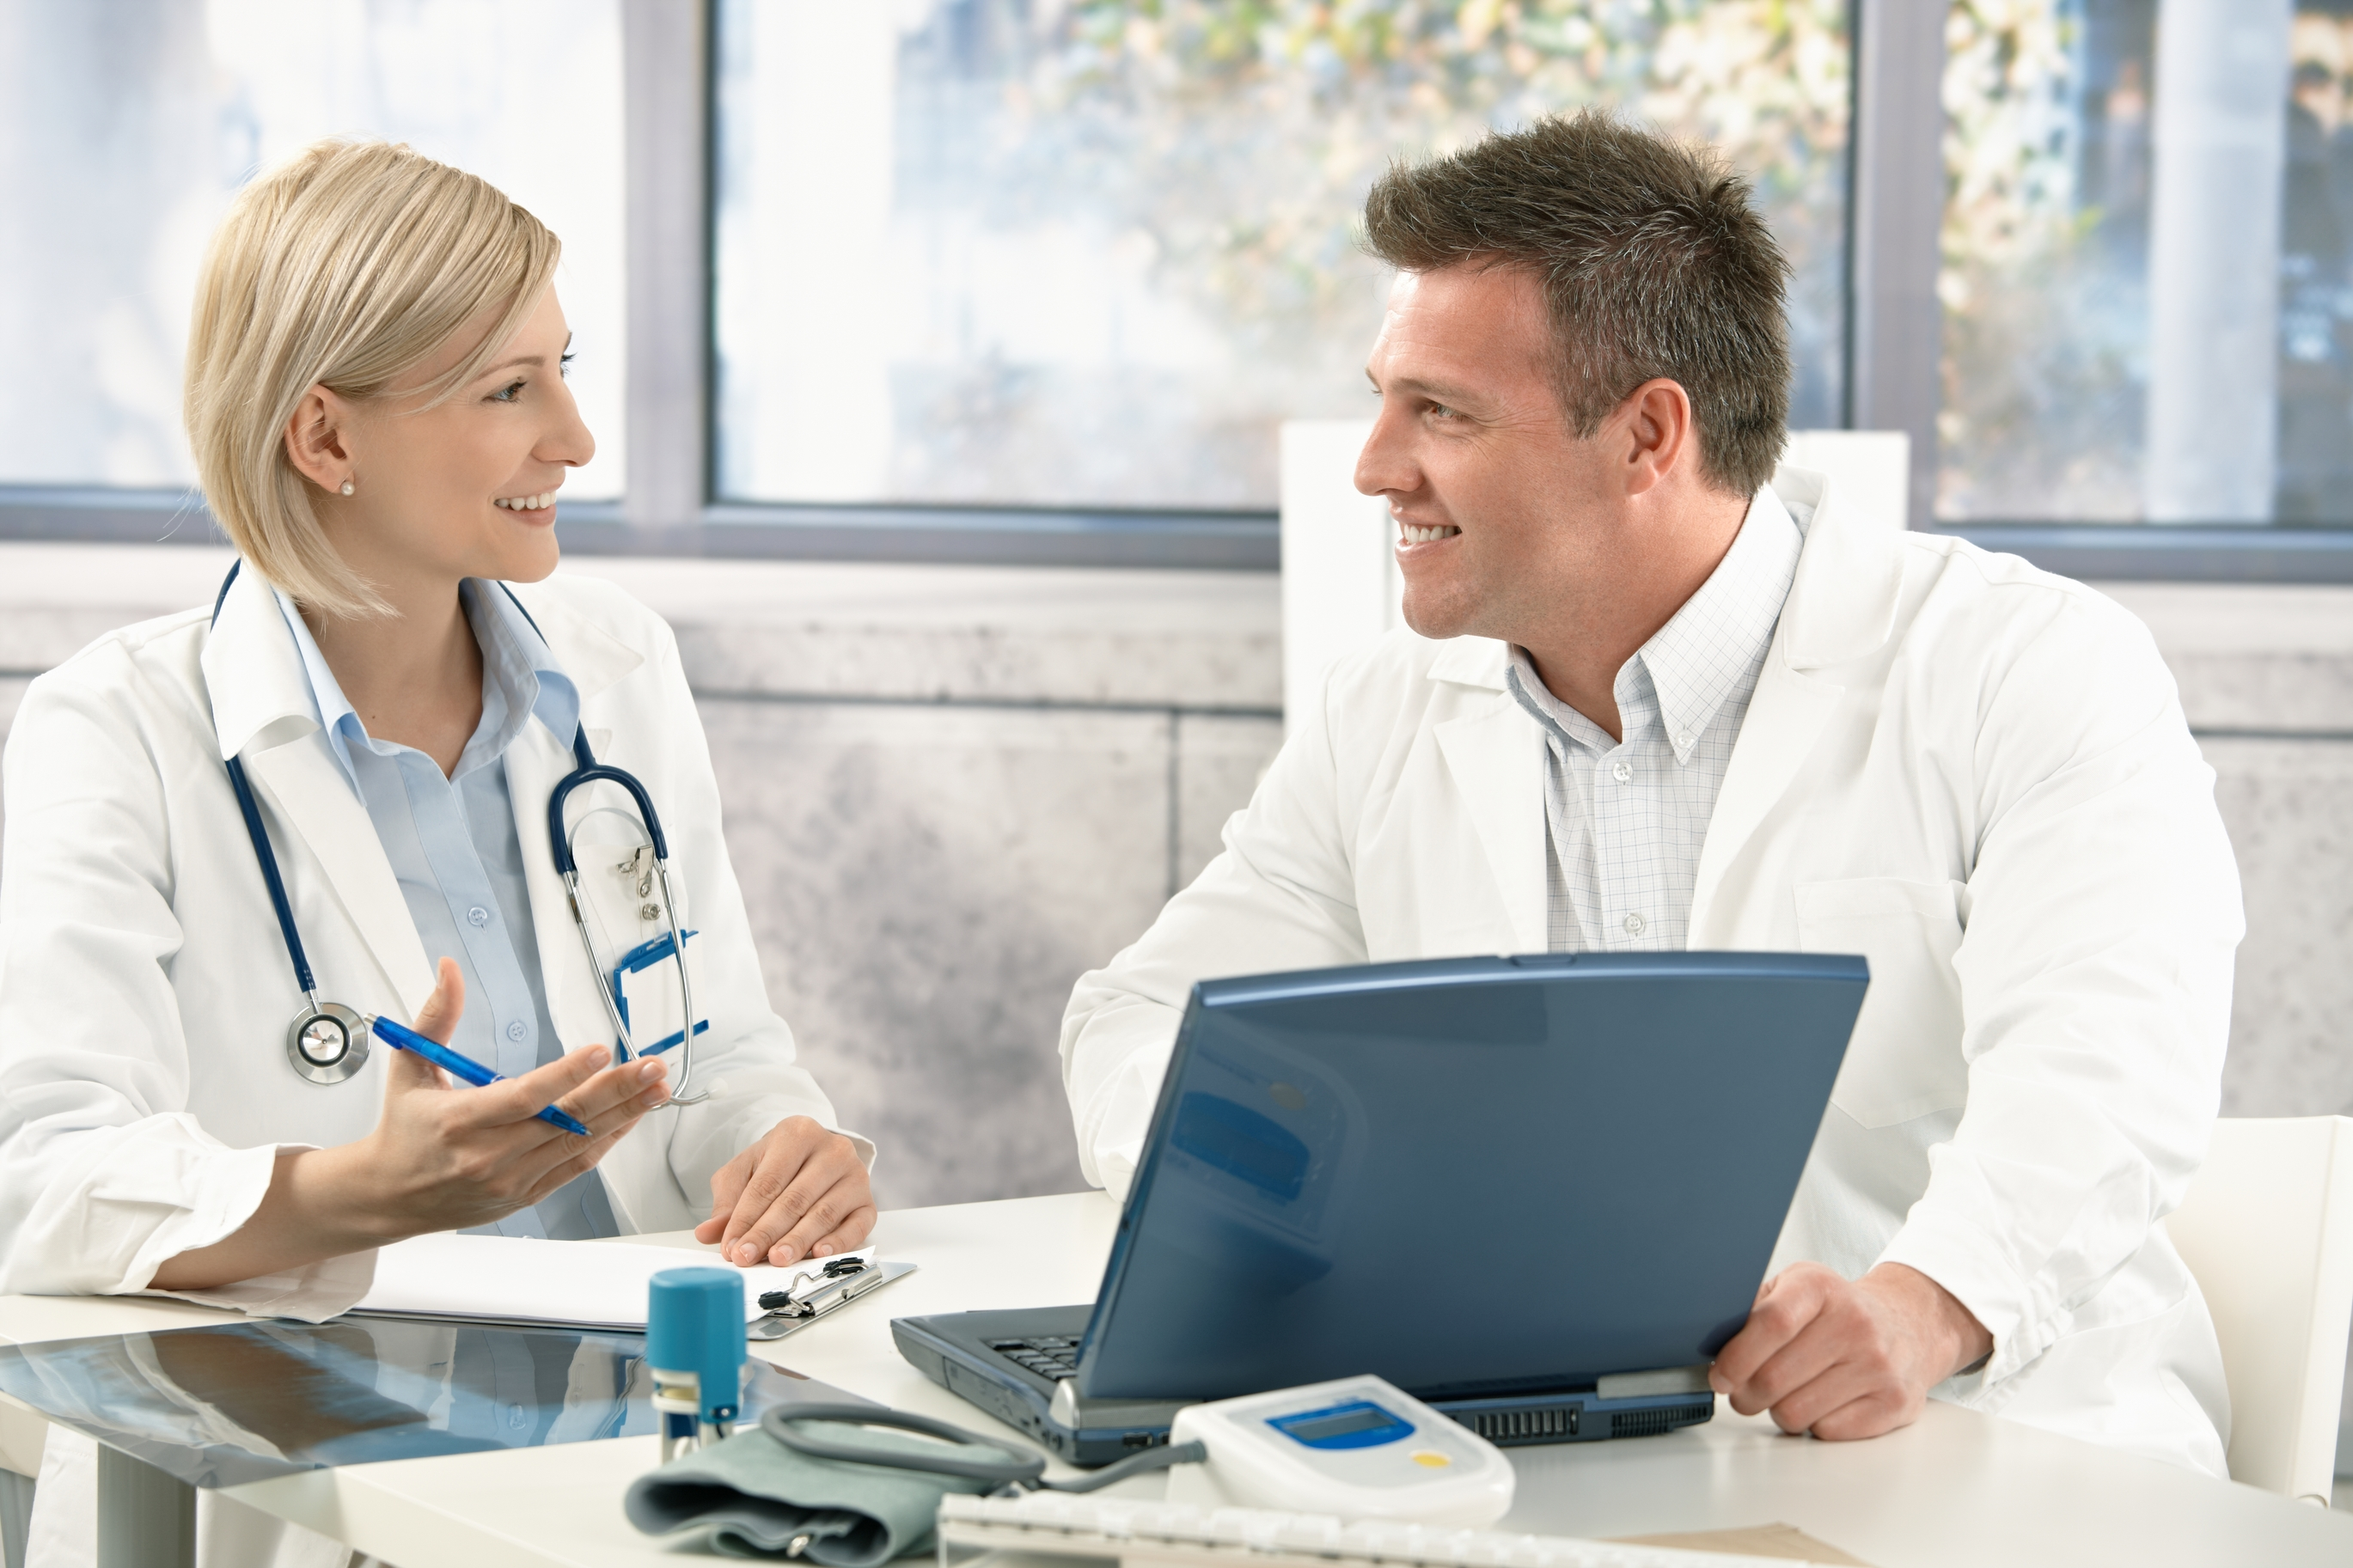 Stay up to date on the newest legal matters for health care providers in Arizona with the Arizona Health Care Attorney Blog